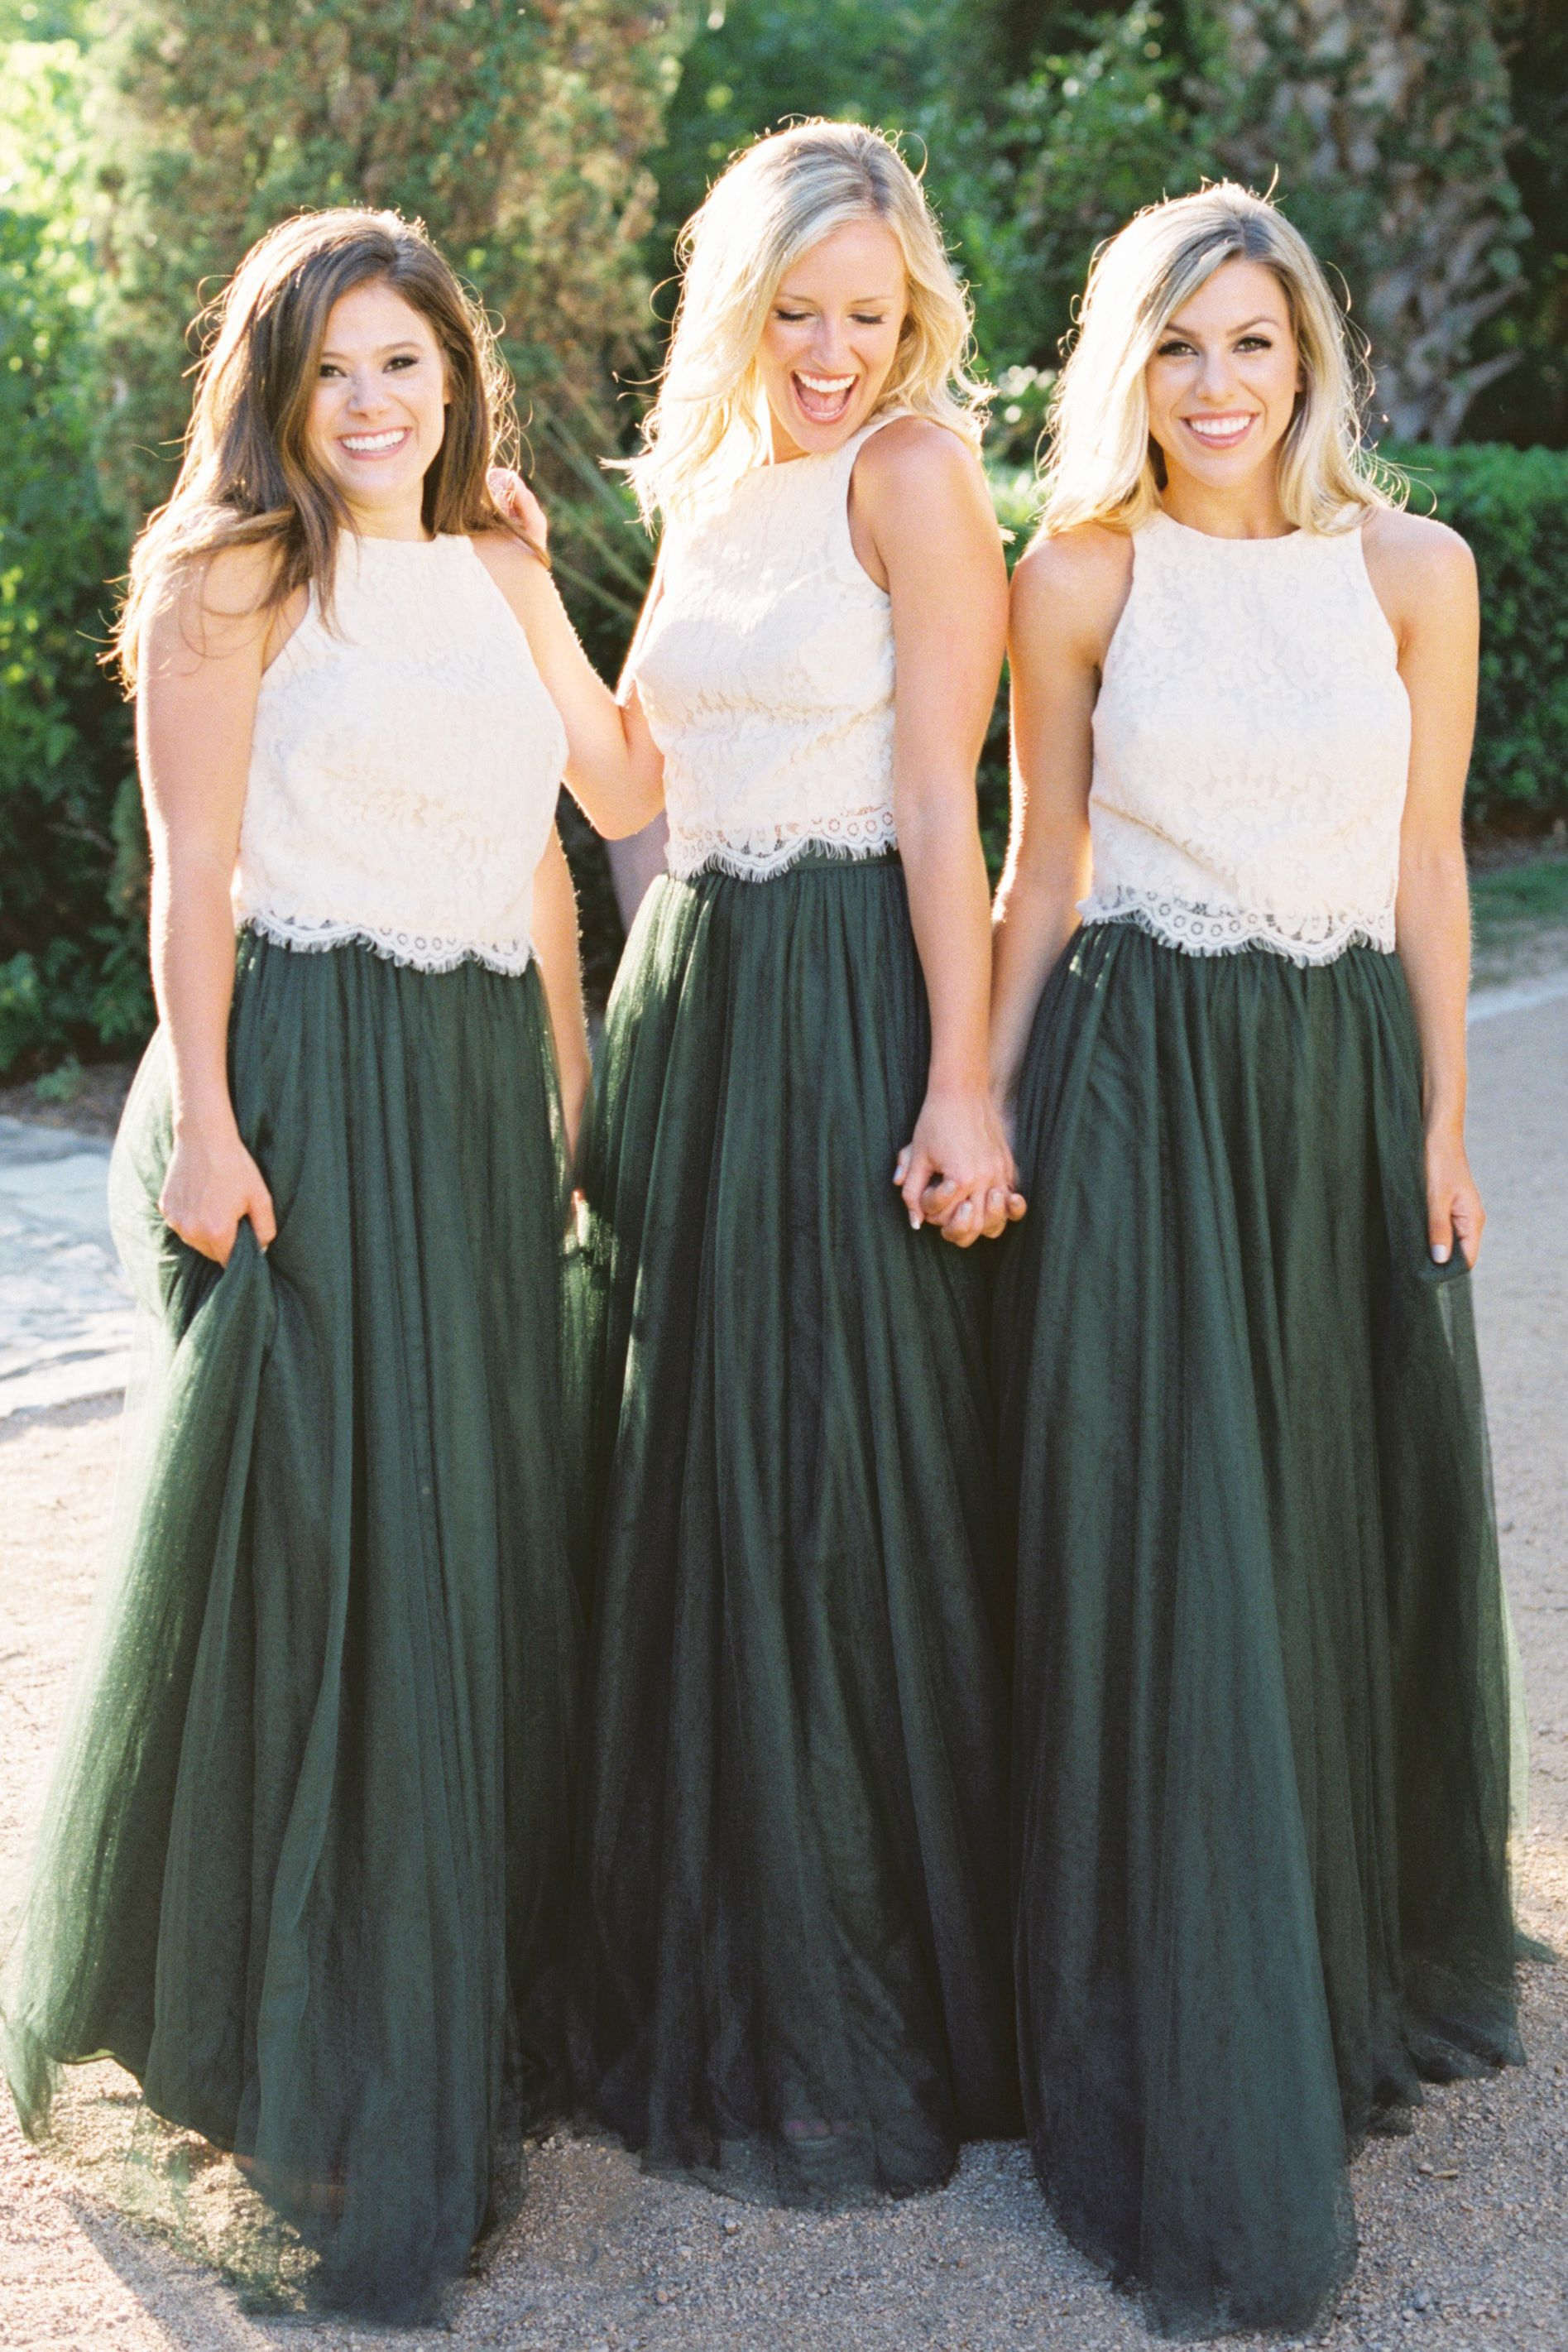 Bridesmaid Dresses And Separates From The Leading Ecommerce Bridesmaid Dress Co Tulle Bridesmaid Dress Bridesmaid Dresses Plus Size Dark Green Bridesmaid Dress